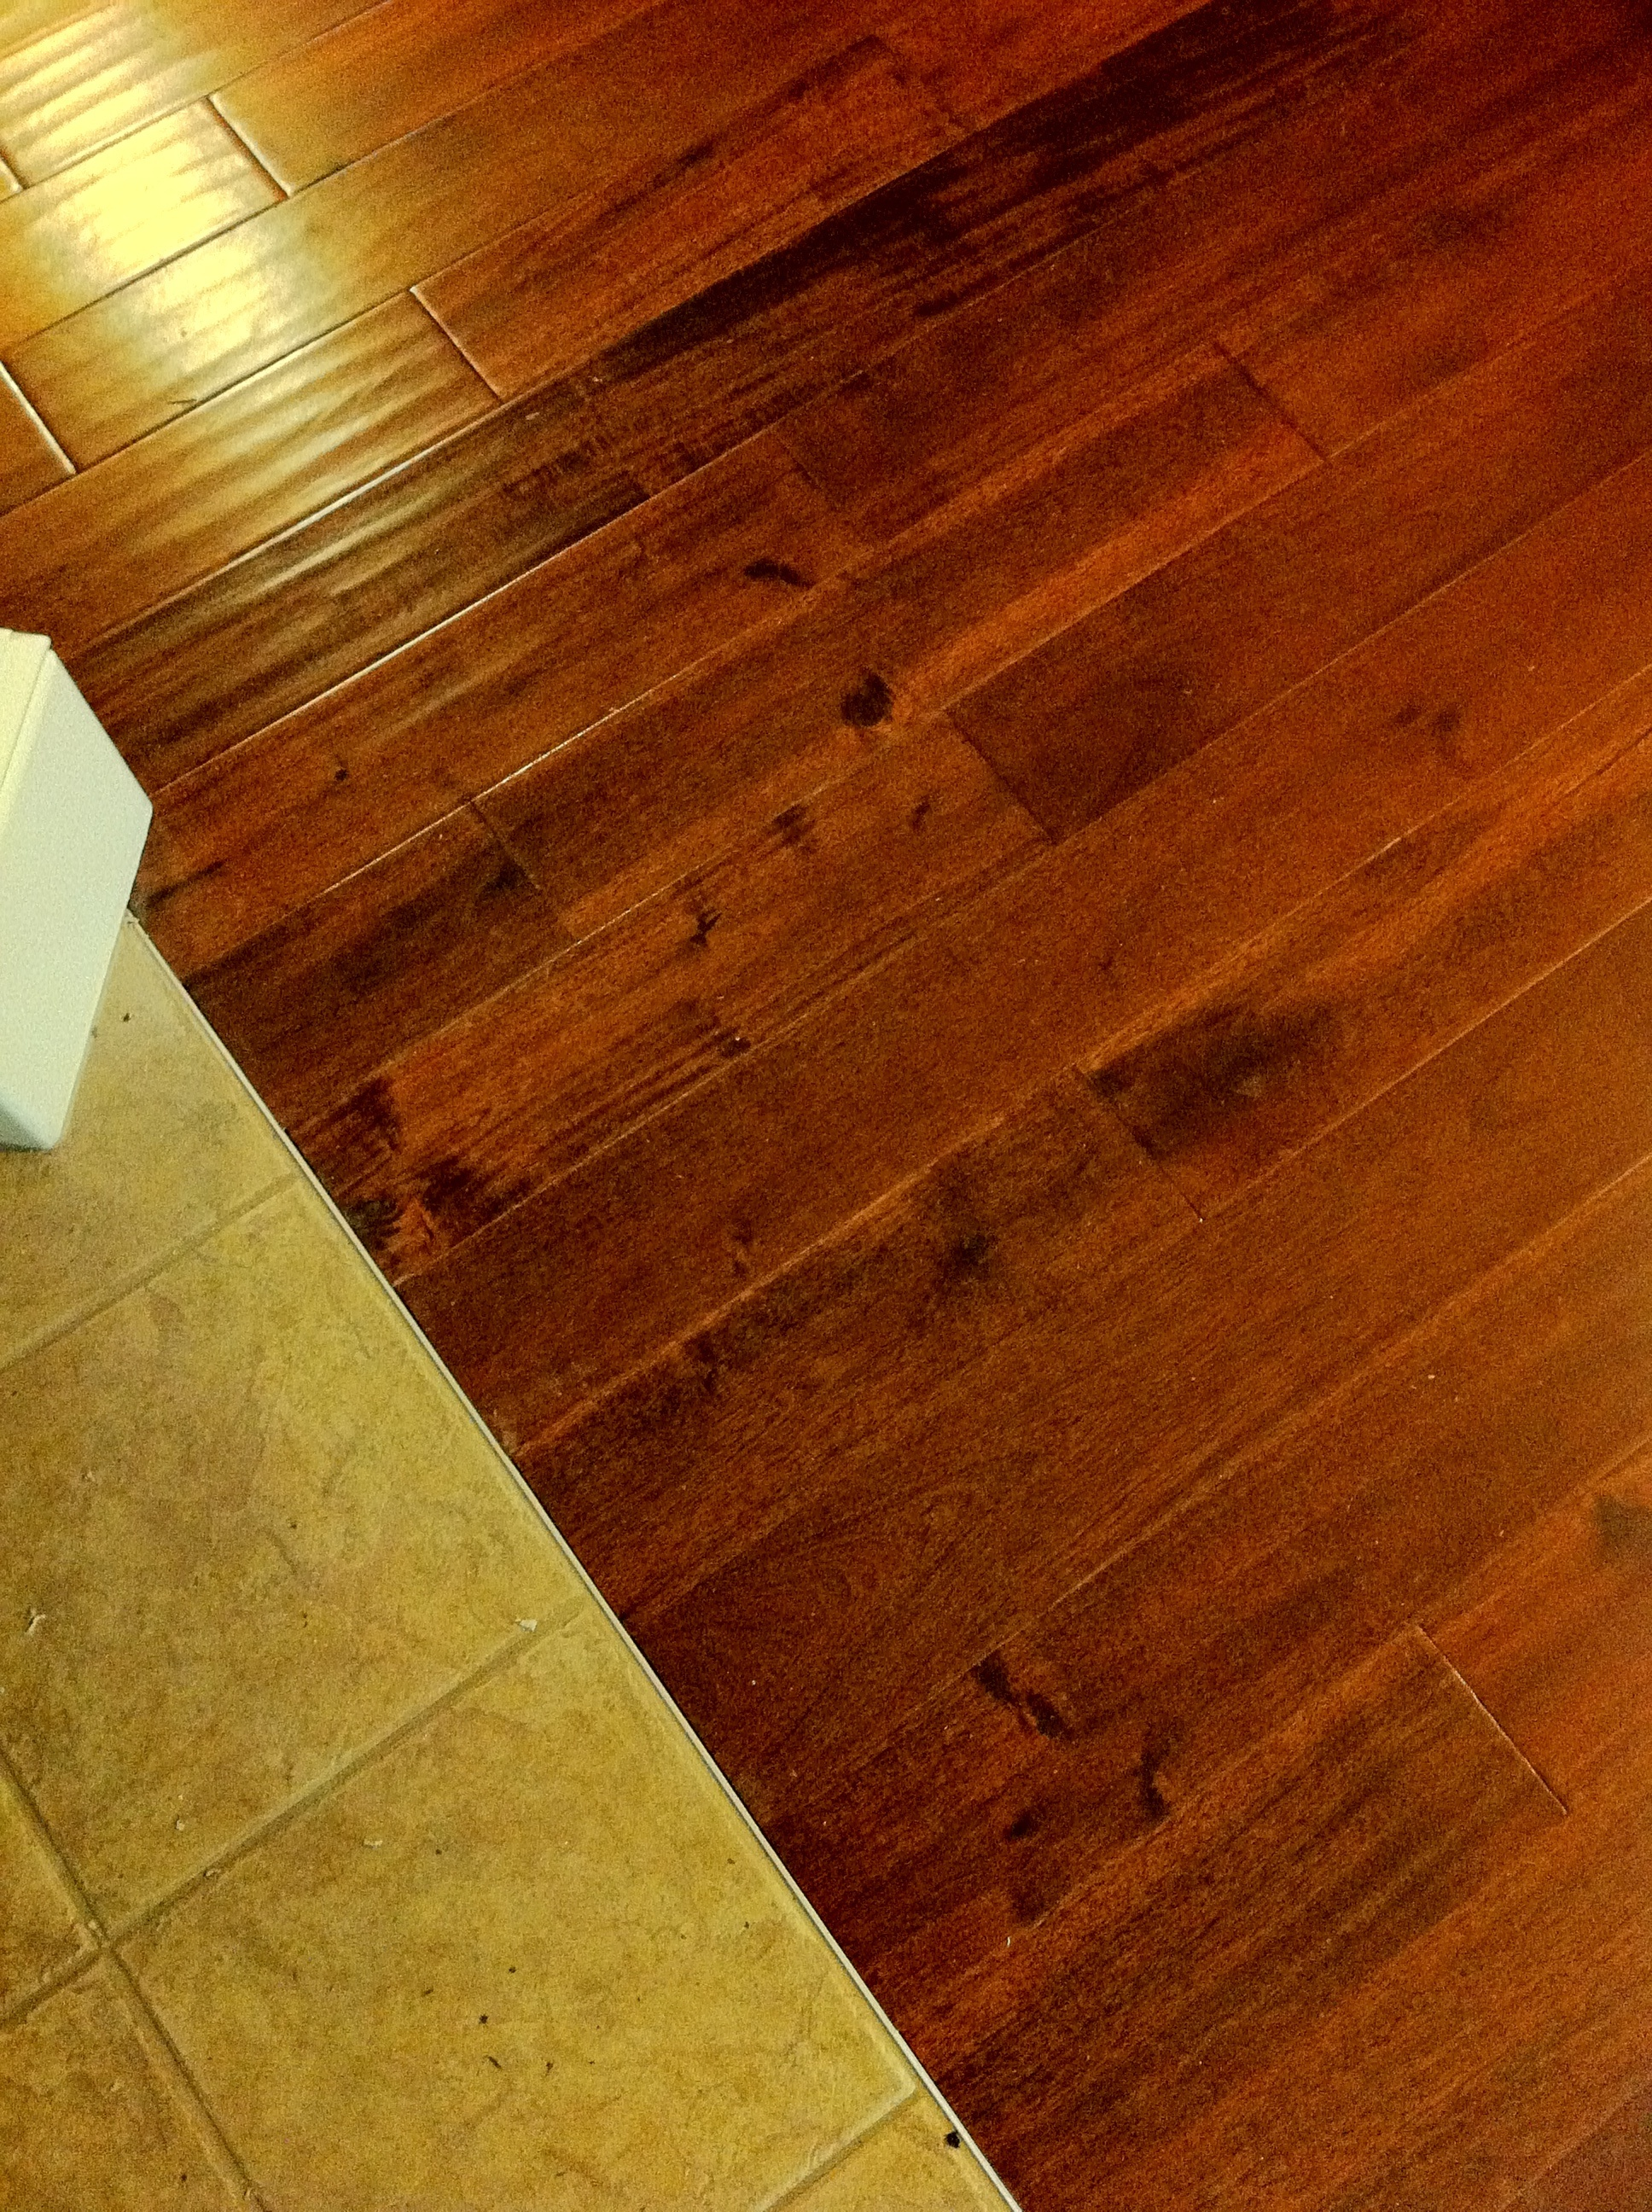 Hardwood floor to tile transition - Columbia Missouri ...